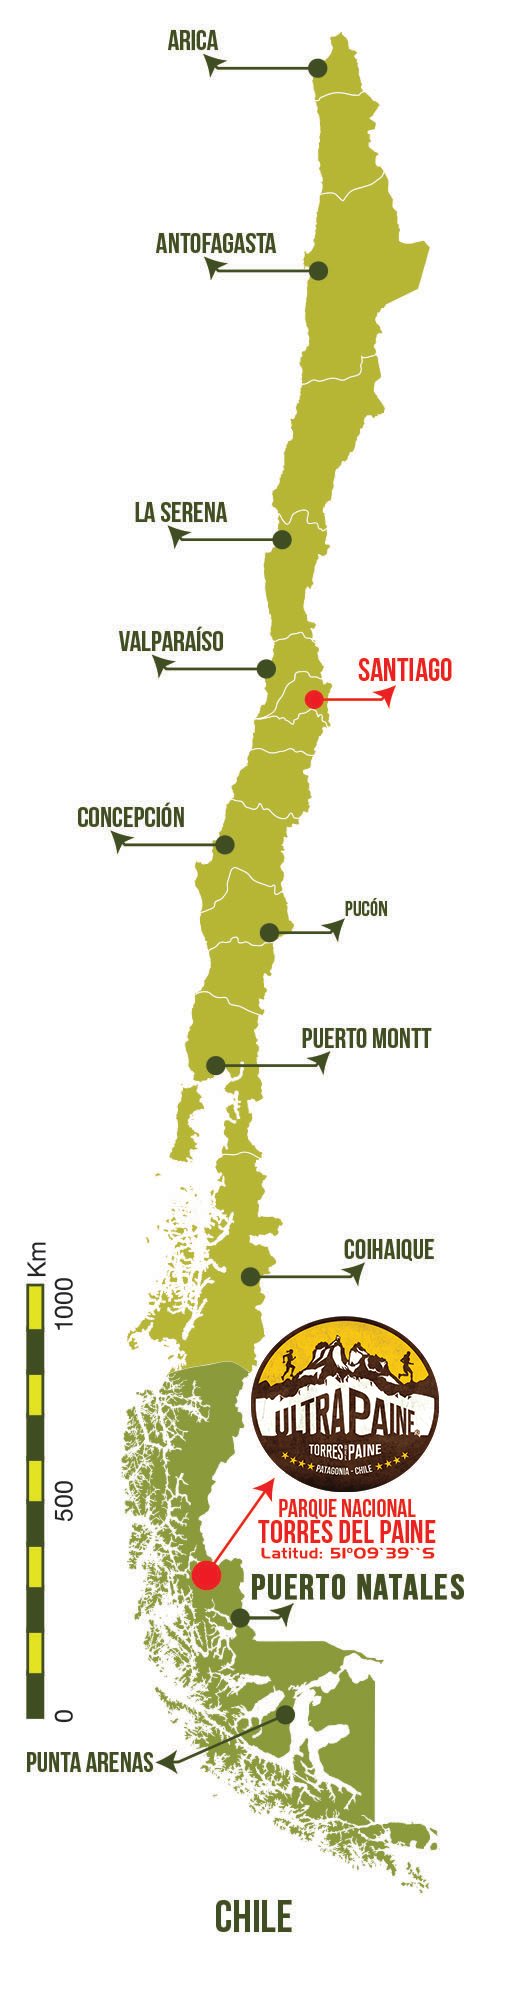 Ultra Paine Mapa General de Chile 2021 Patagonia, Chile